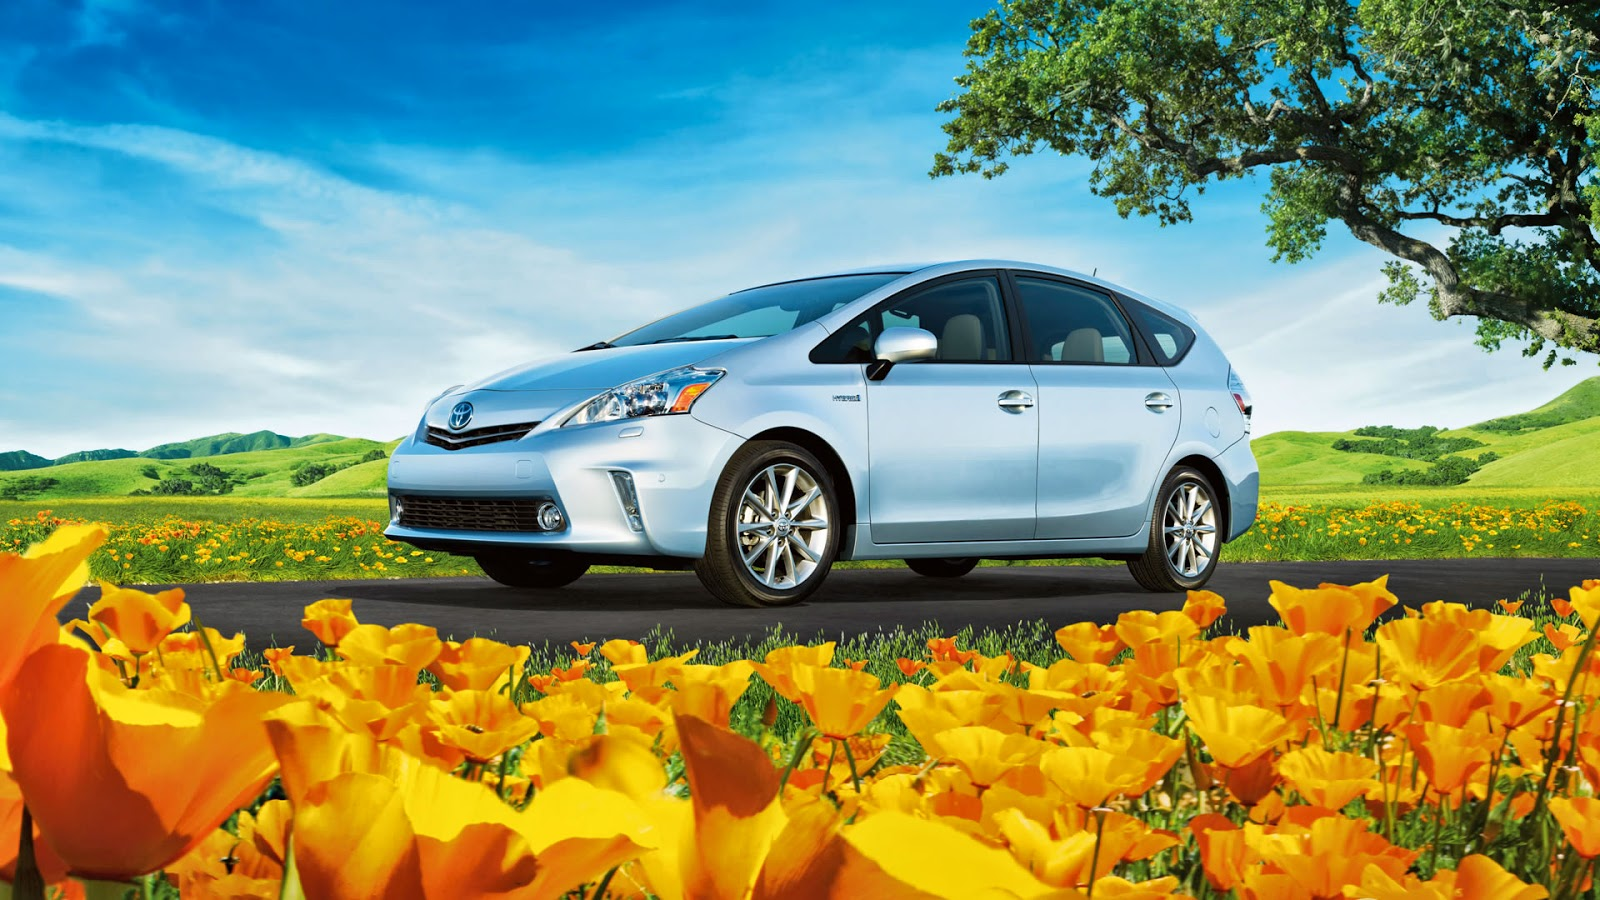 Stokes Brown Toyota >> Stokes Brown Toyota of Hilton Head: Driving With A Green Thumb: the 2015 Toyota Prius